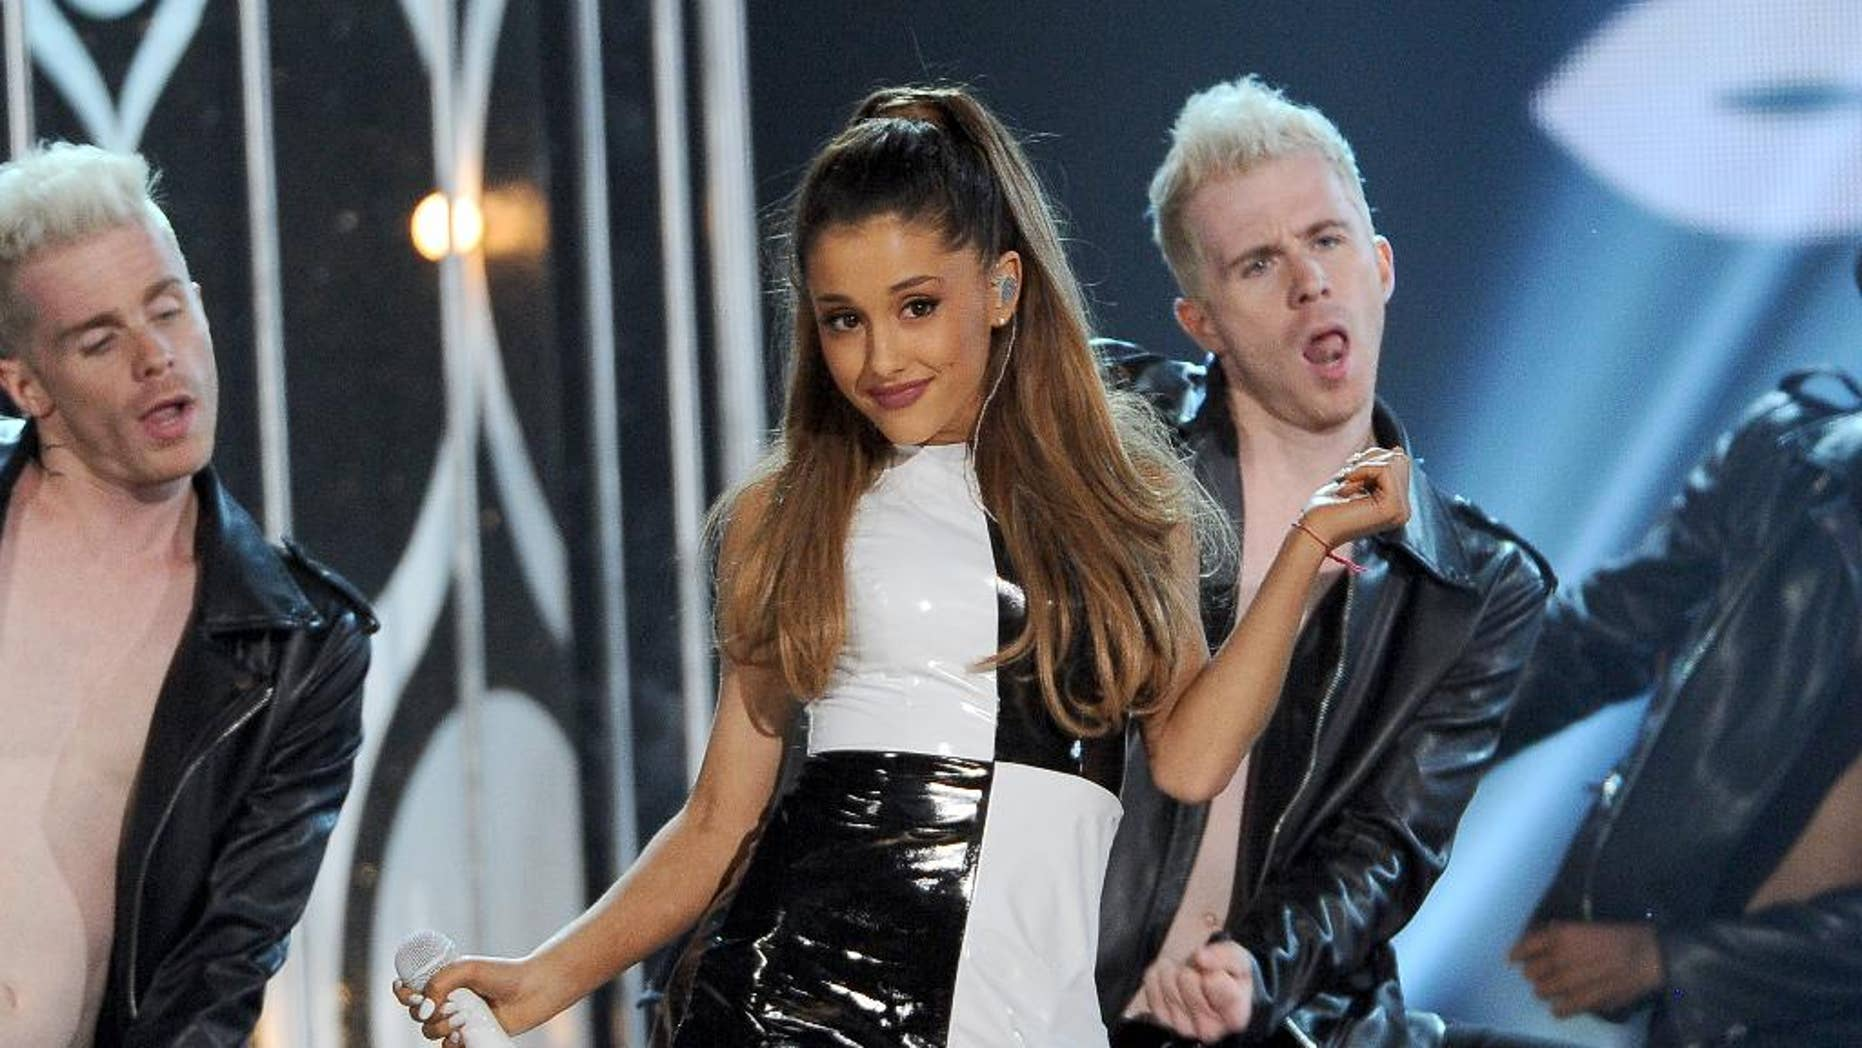 """FILE - In this May 18, 2014 file photo, Ariana Grande performs at the Billboard Music Awards at the MGM Grand Garden Arena, in Las Vegas. MTV will reprise its former """"Total Request Live"""" countdown show for a day with breakthrough pop singer Ariana Grande. The network announced Wednesday, June 25, 2014, it will bring back the series on July 2.  (Photo by Chris Pizzello/Invision/AP, file)"""